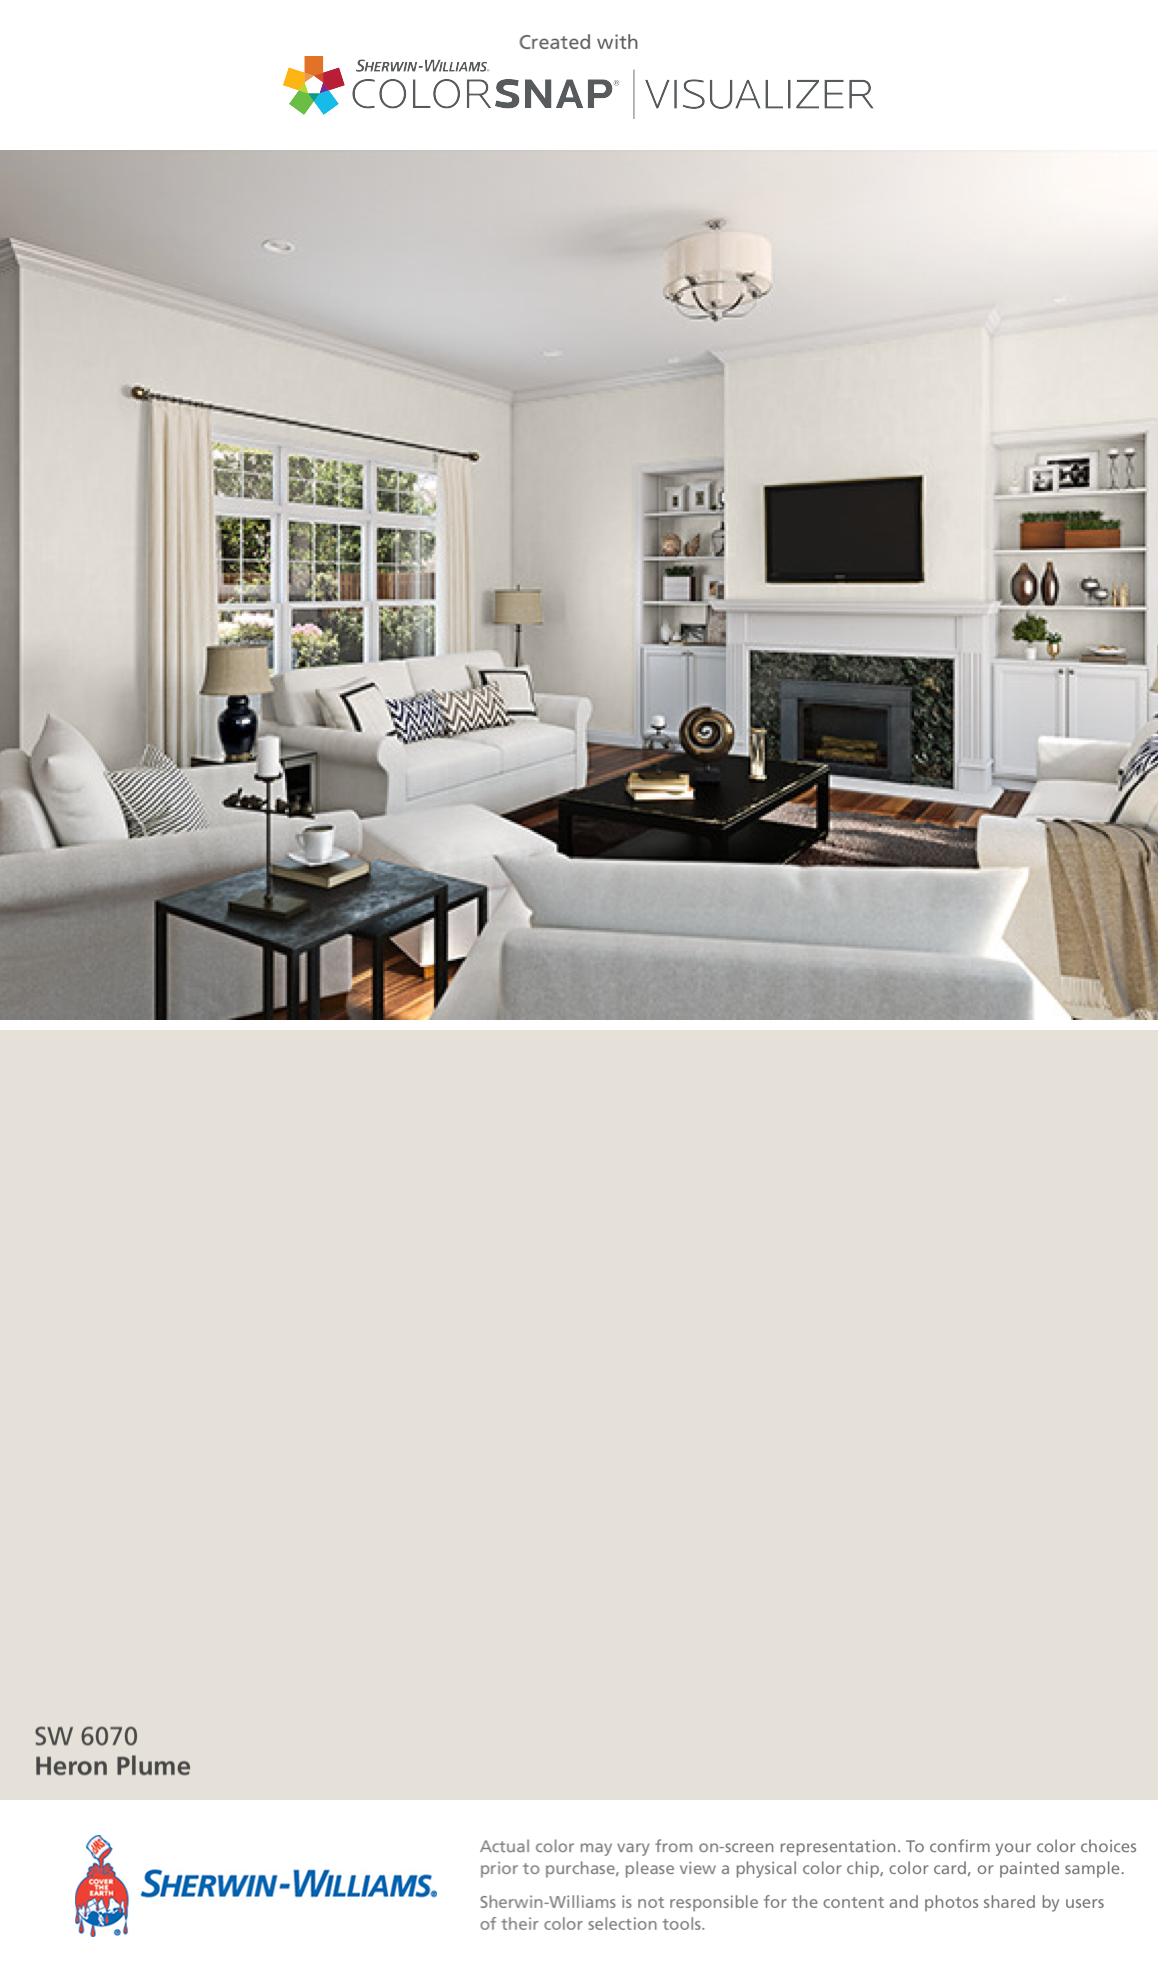 Sherwin williams popular greys - I Found This Color With Colorsnap Visualizer For Iphone By Sherwin Williams Heron